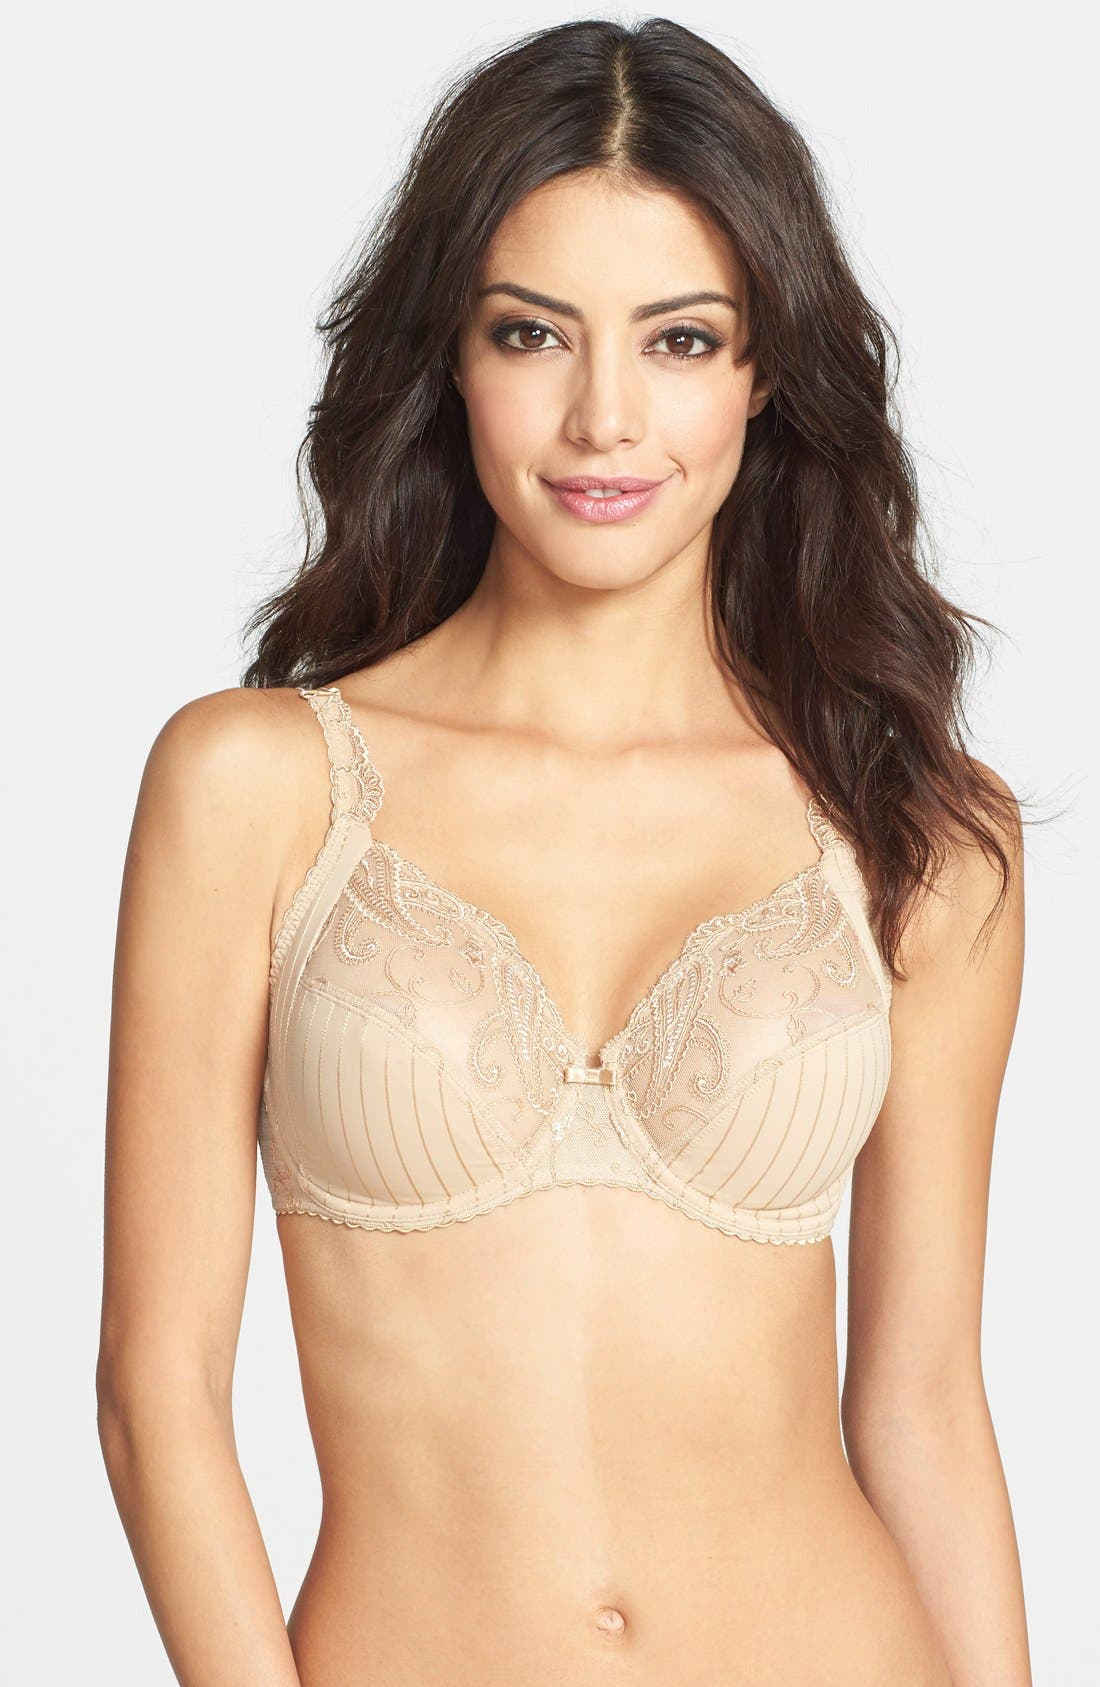 Alternate Image 1 Selected - Chantelle Intimates 'Cachemire' Full Support Underwire Bra